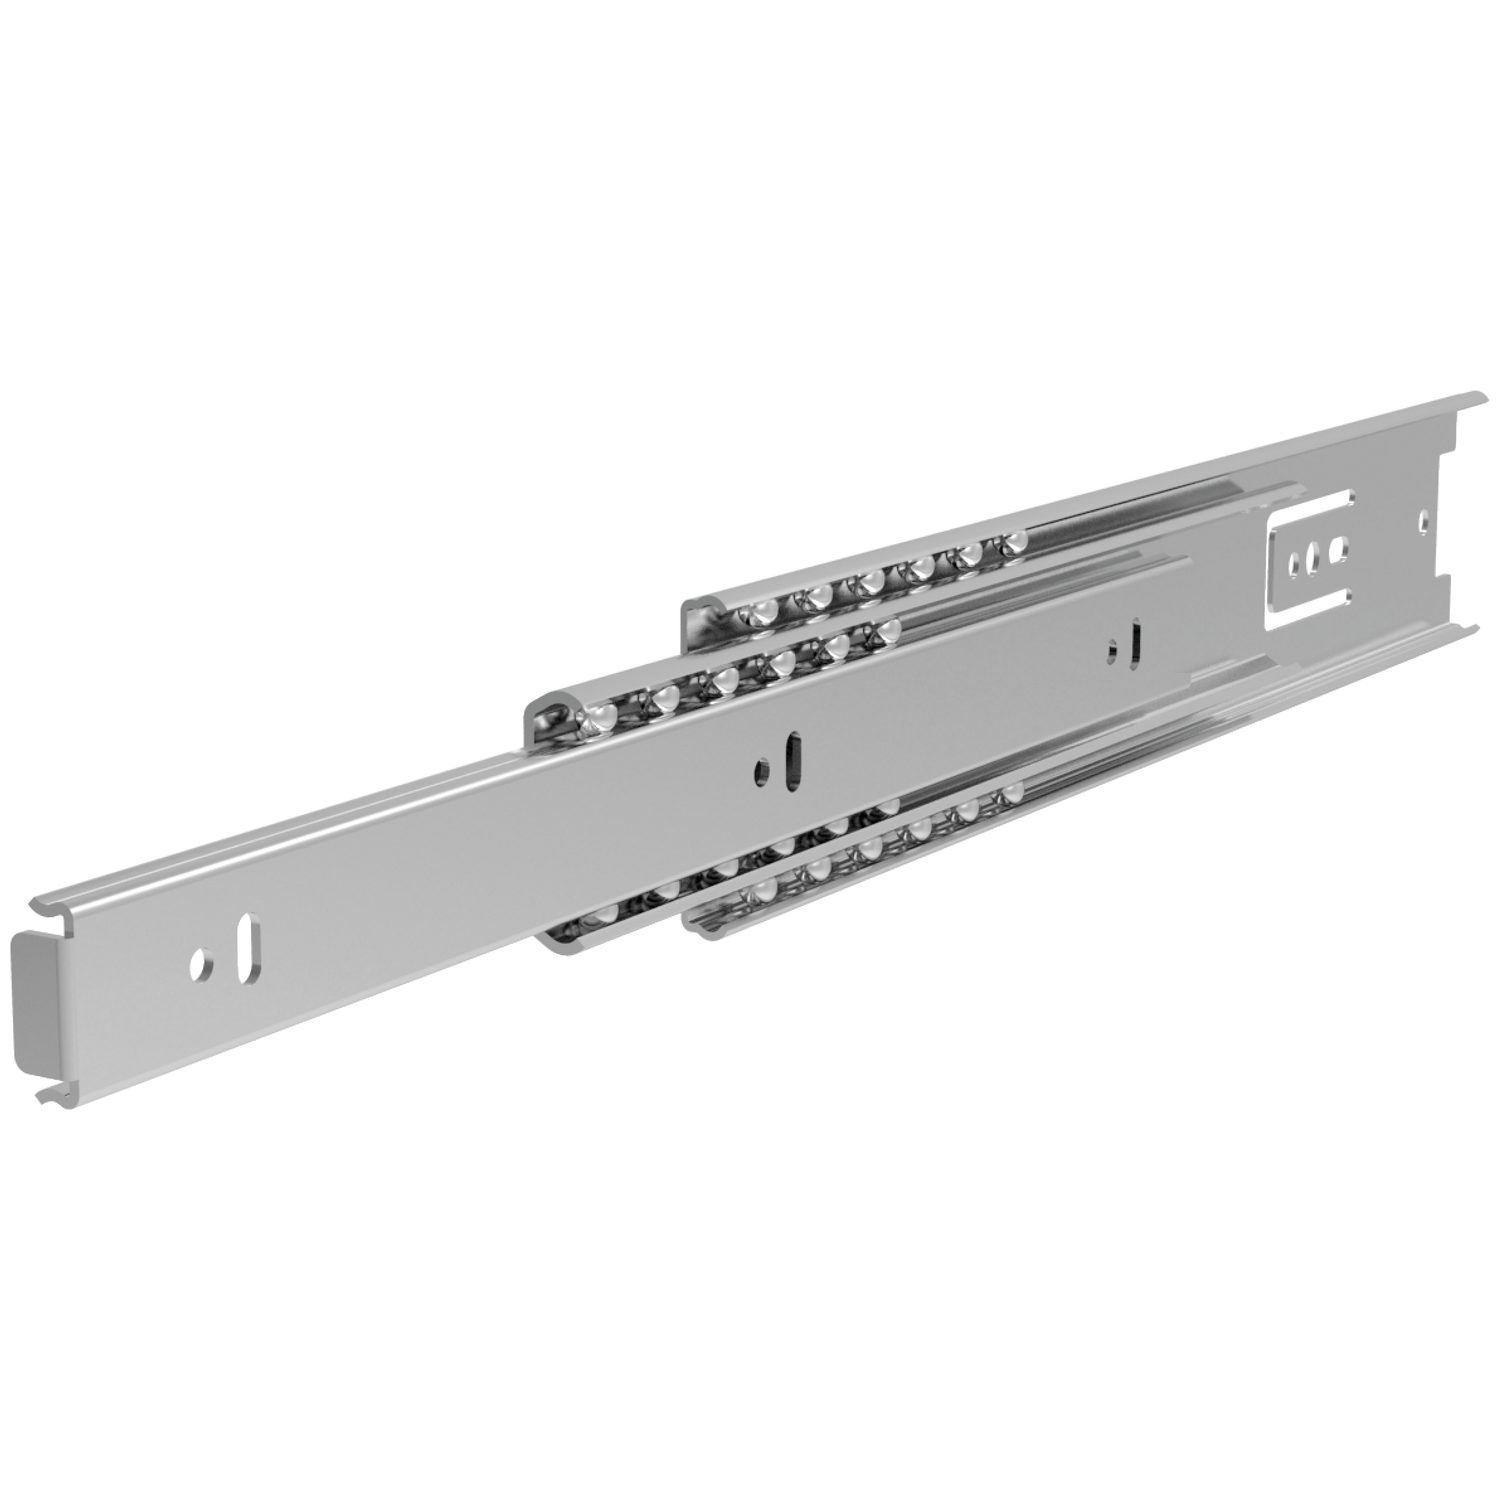 Fully Telescopic Drawer Slides Steel, zinc plated drawer slides, loads up to 20Kg per pair. Hardened steel balls with steel and plastic ball cage. Separate inner rail.